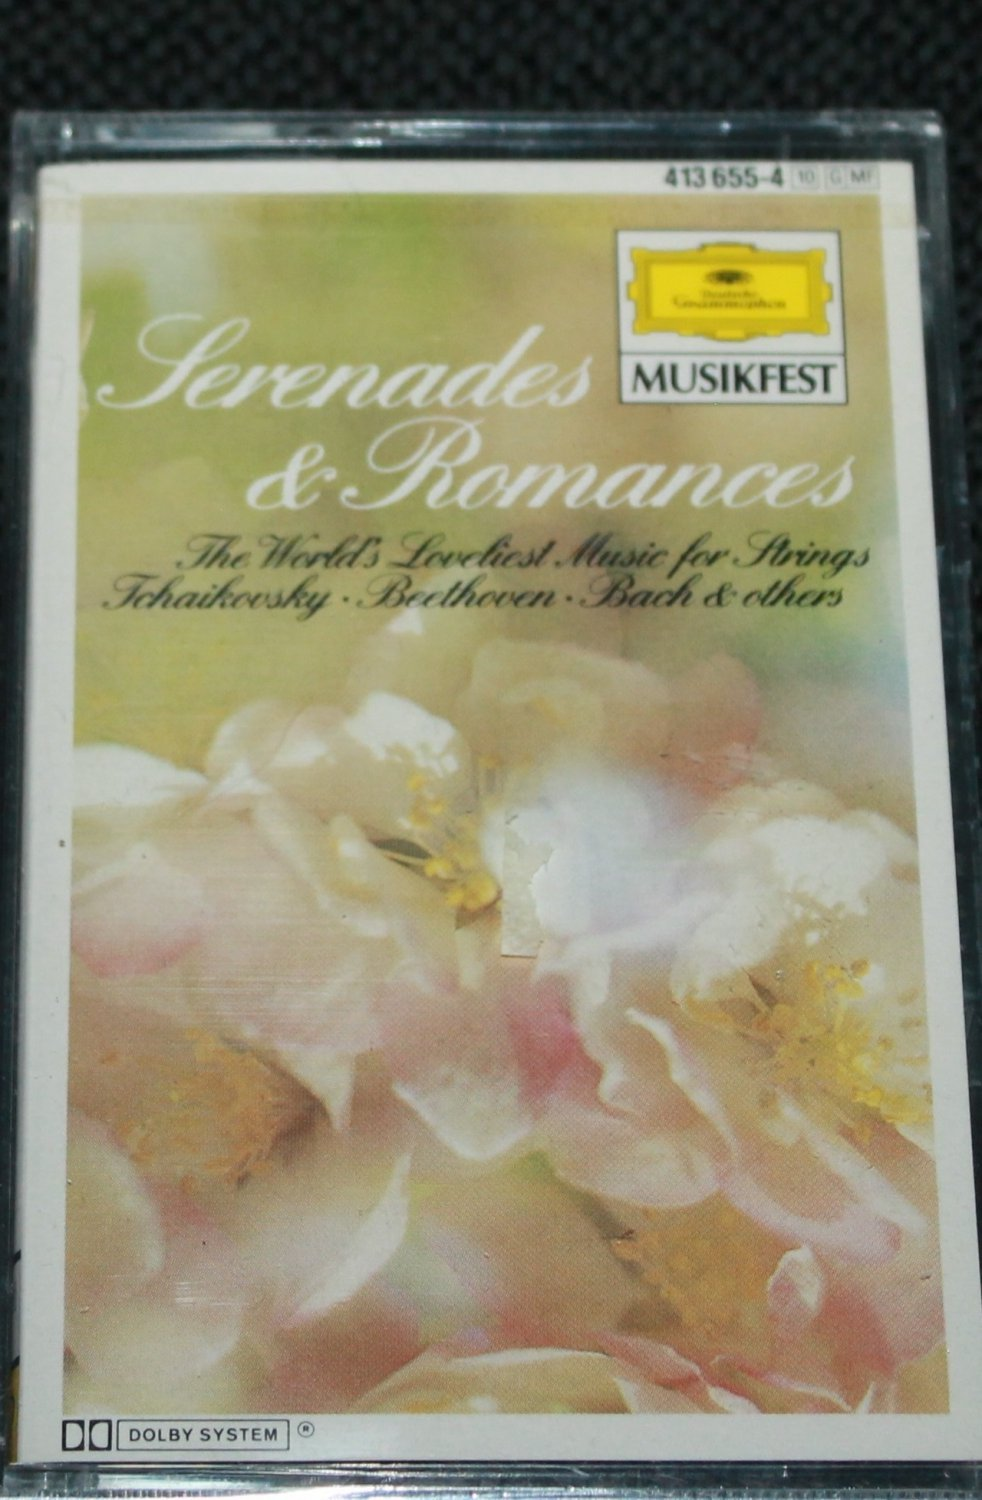 Serenades and Romances The World's Lovliest Music for Strings - music cassette tape